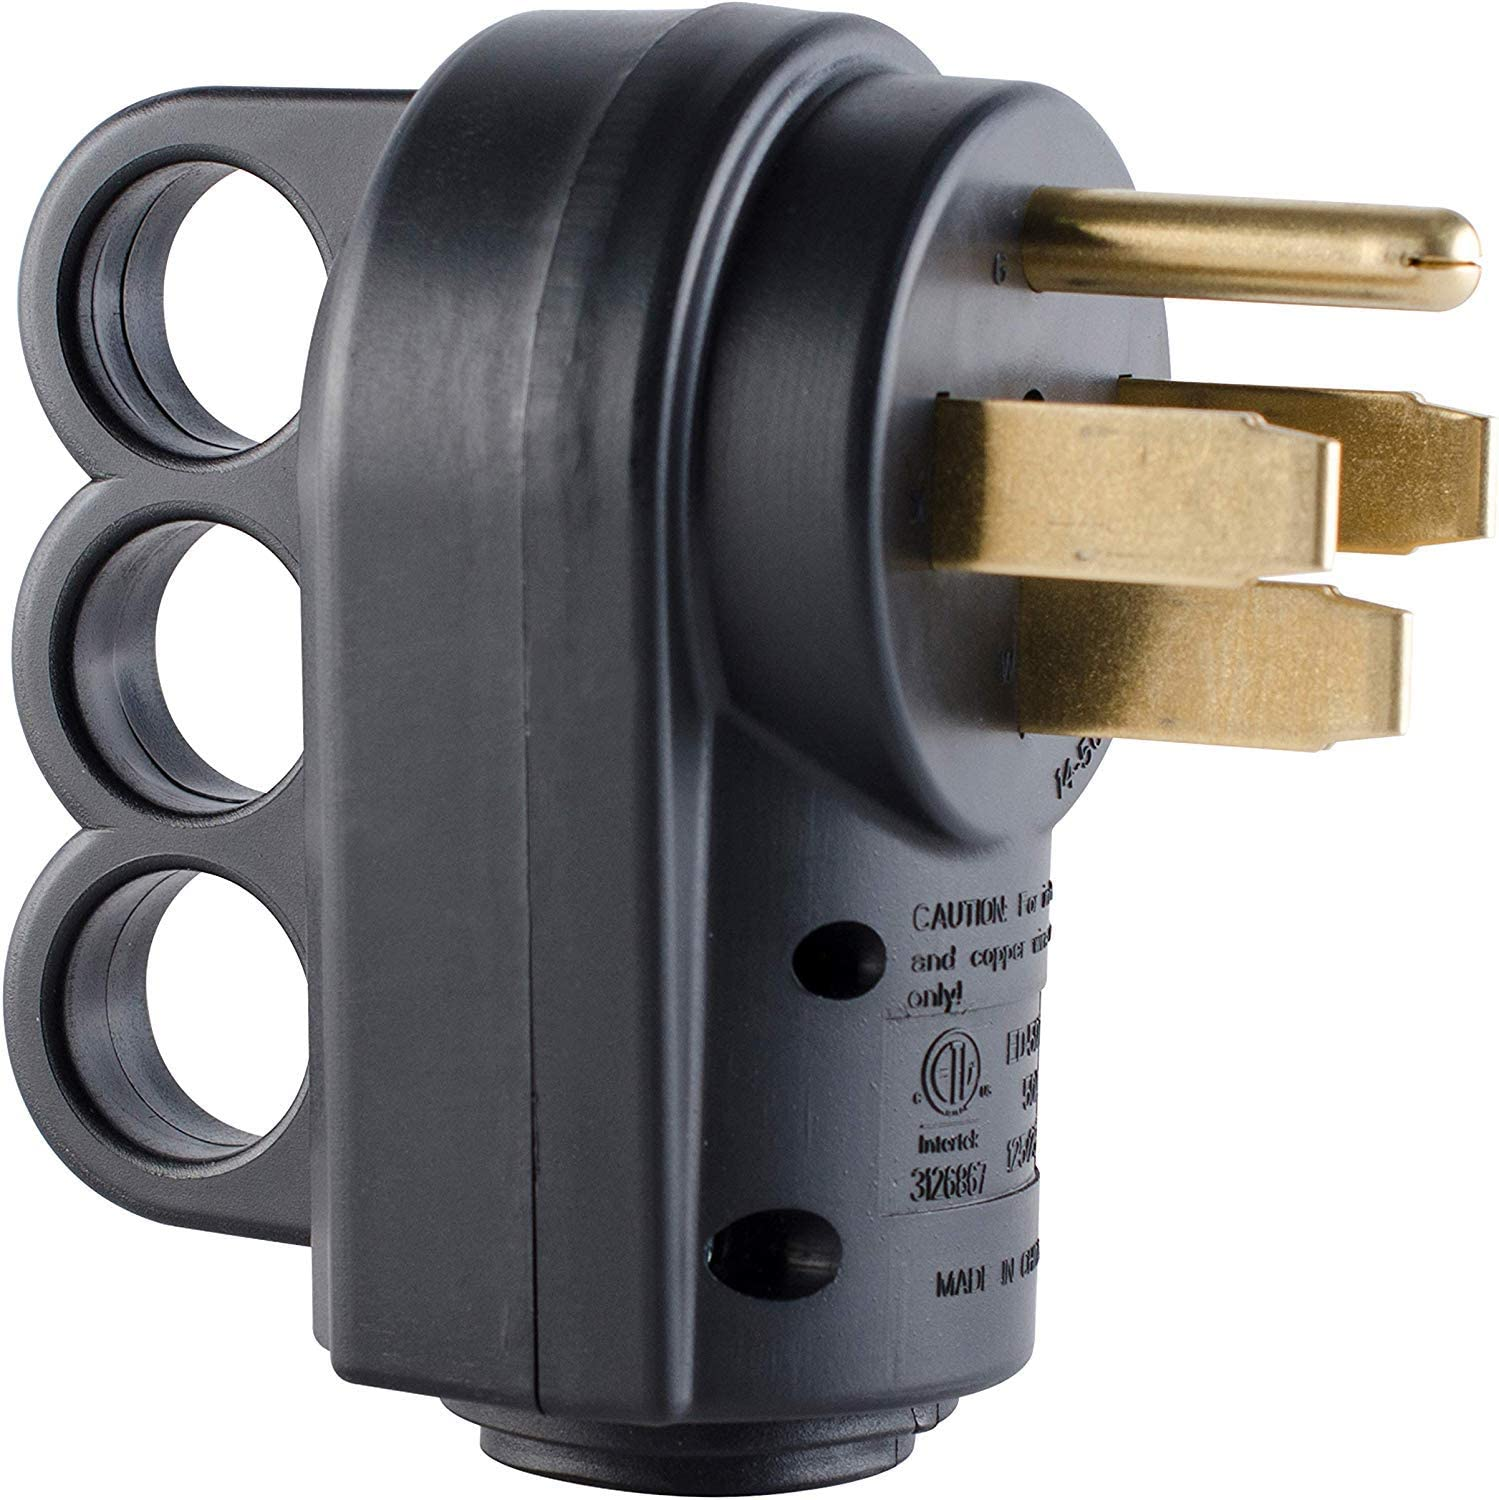 RVGUARD 50AMP Male(14-50P)Replacement Plug, 125/250V, with Finger Grip (Black)